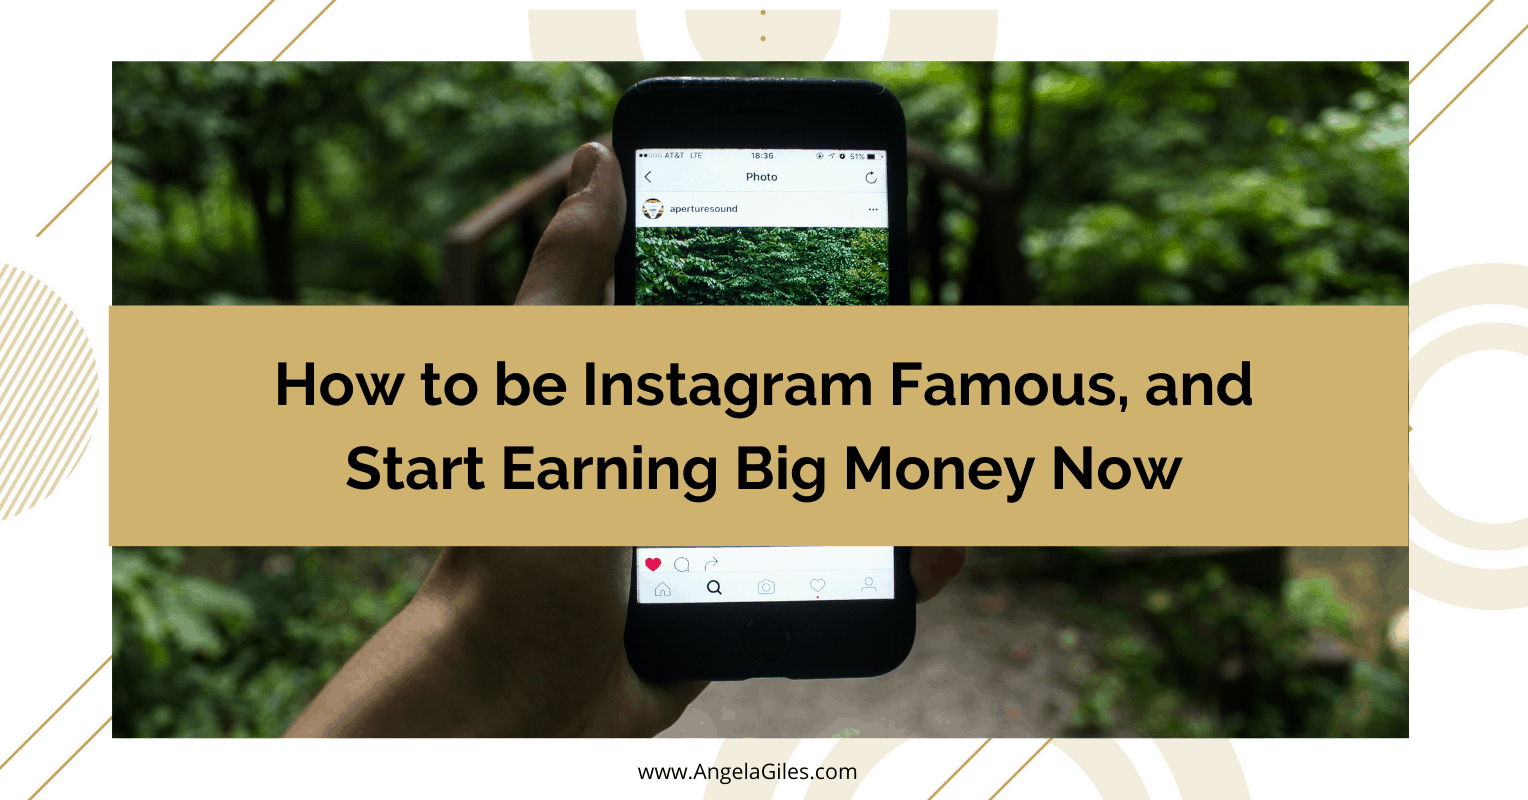 How to be Instagram Famous, and Start Earning Big Money Now